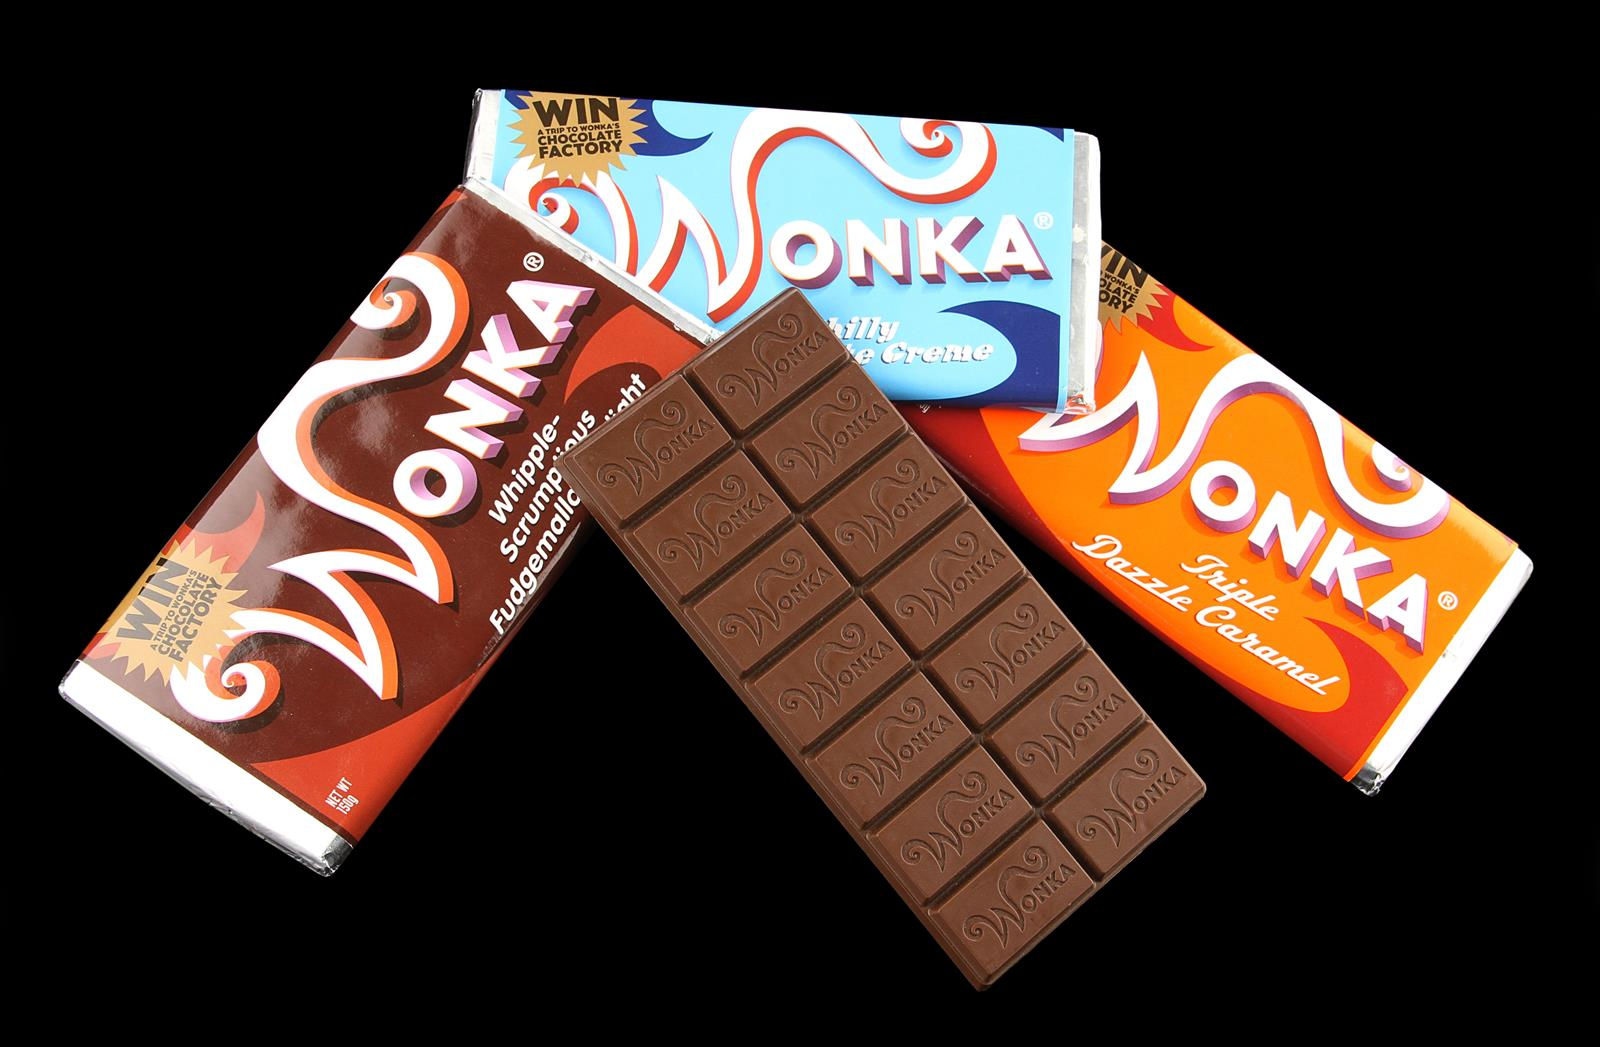 CHARLIE AND THE CHOCOLATE FACTORY (2005) - Set of Wonka Bars A set ...